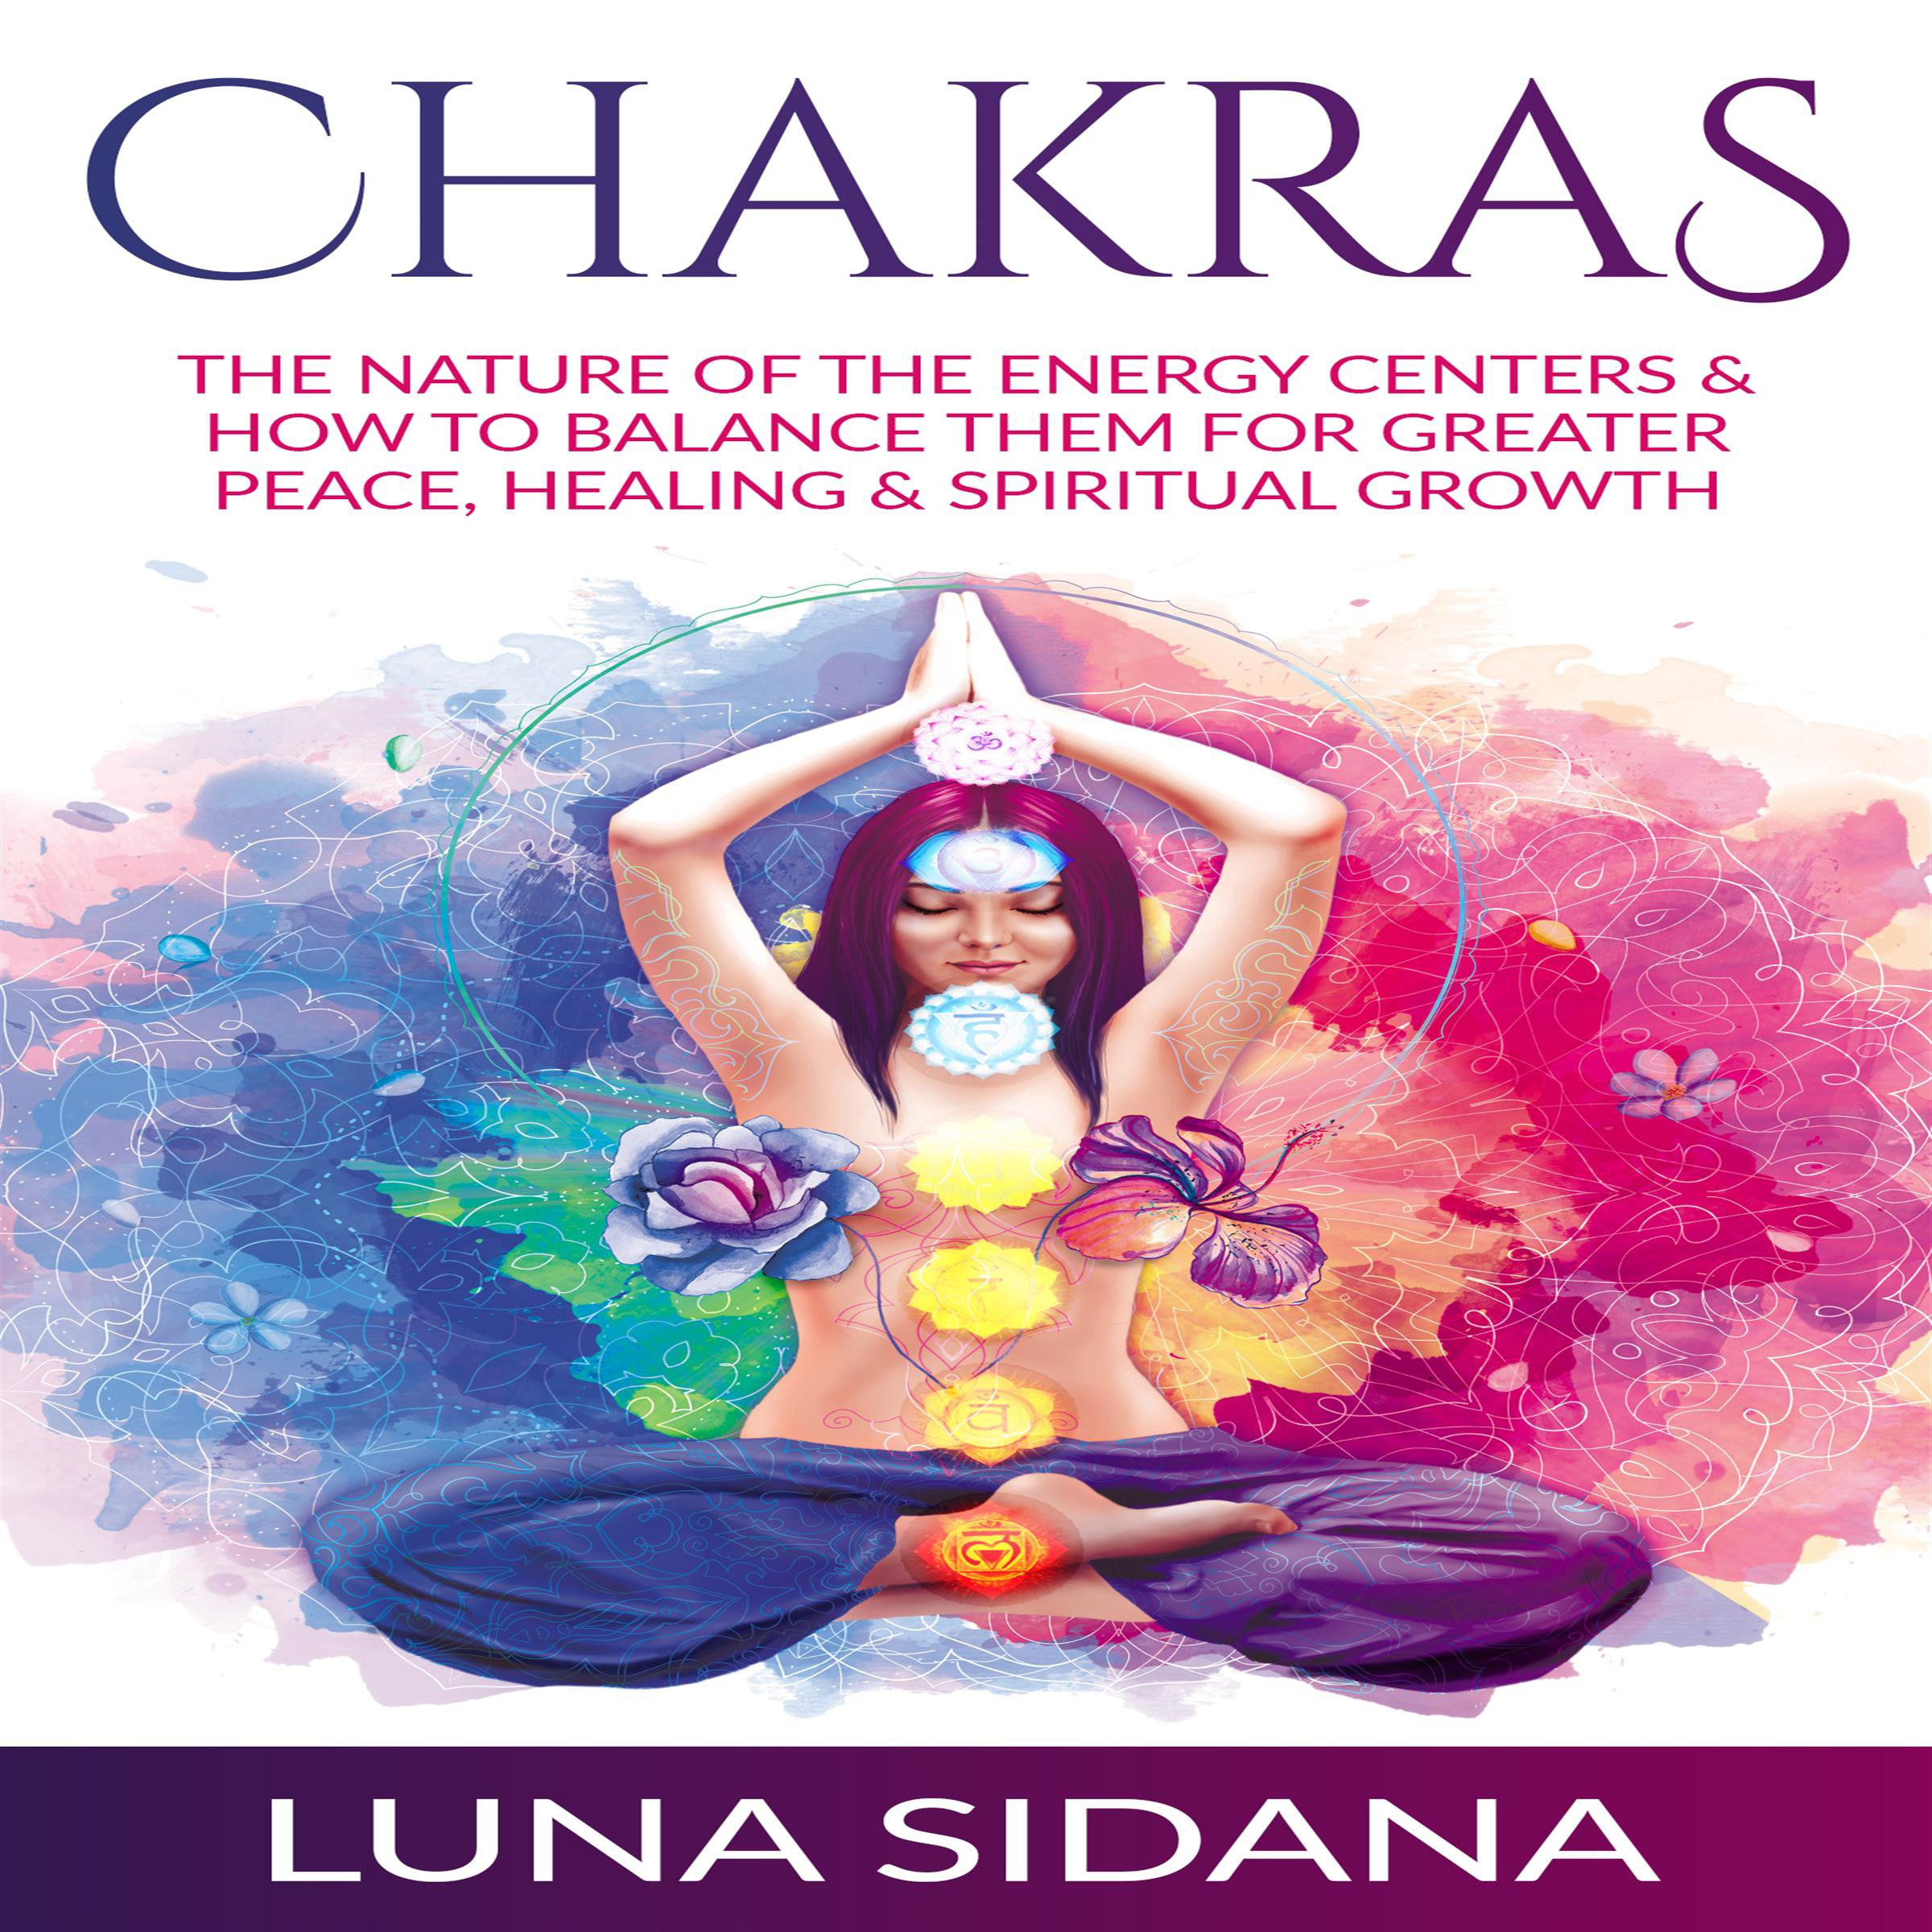 Chakras: The Nature of the Energy Centers & How to